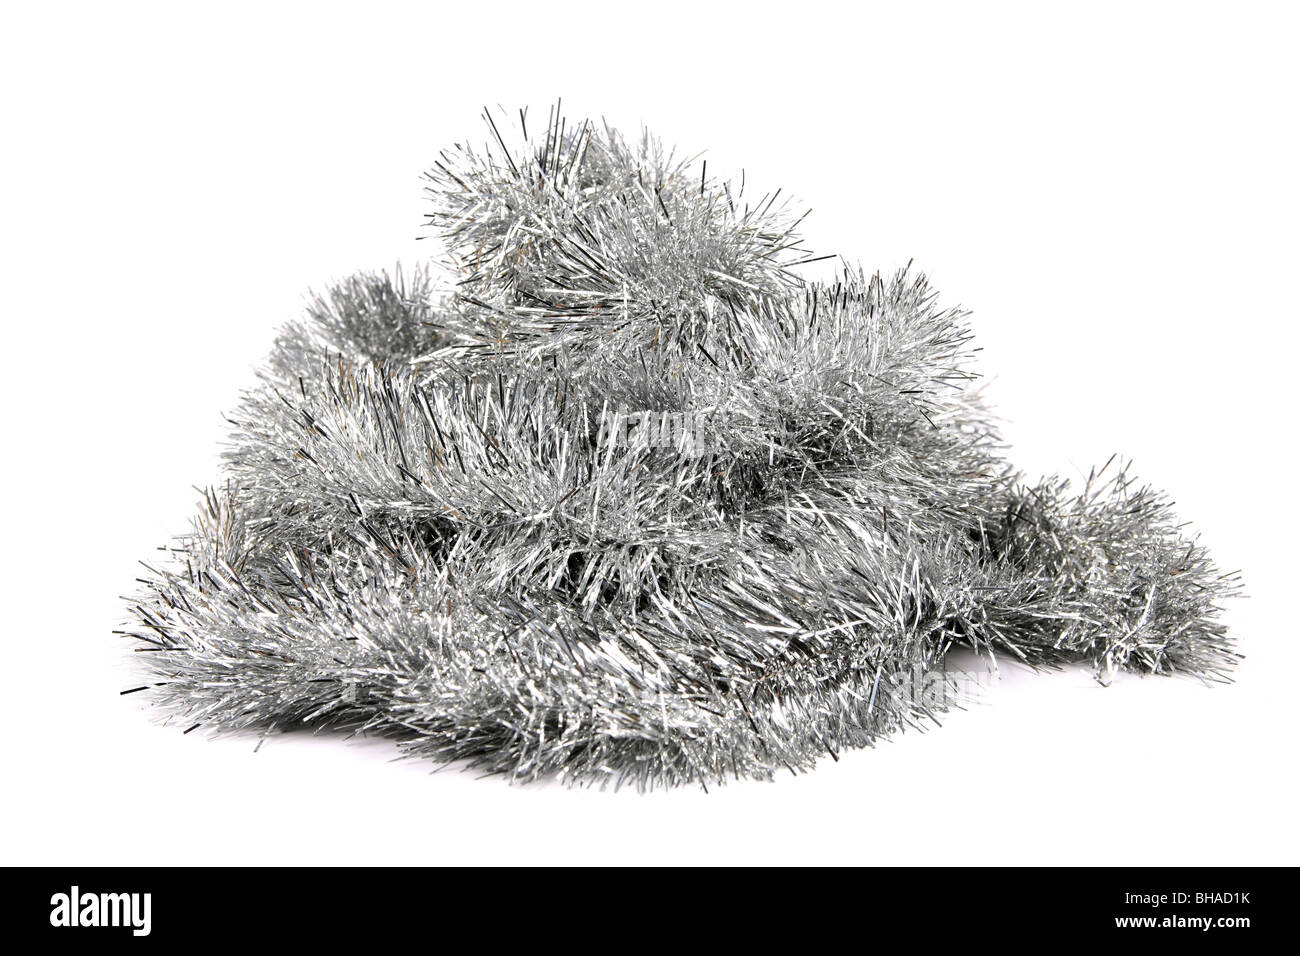 Silver Tinsel against a white background - Stock Image